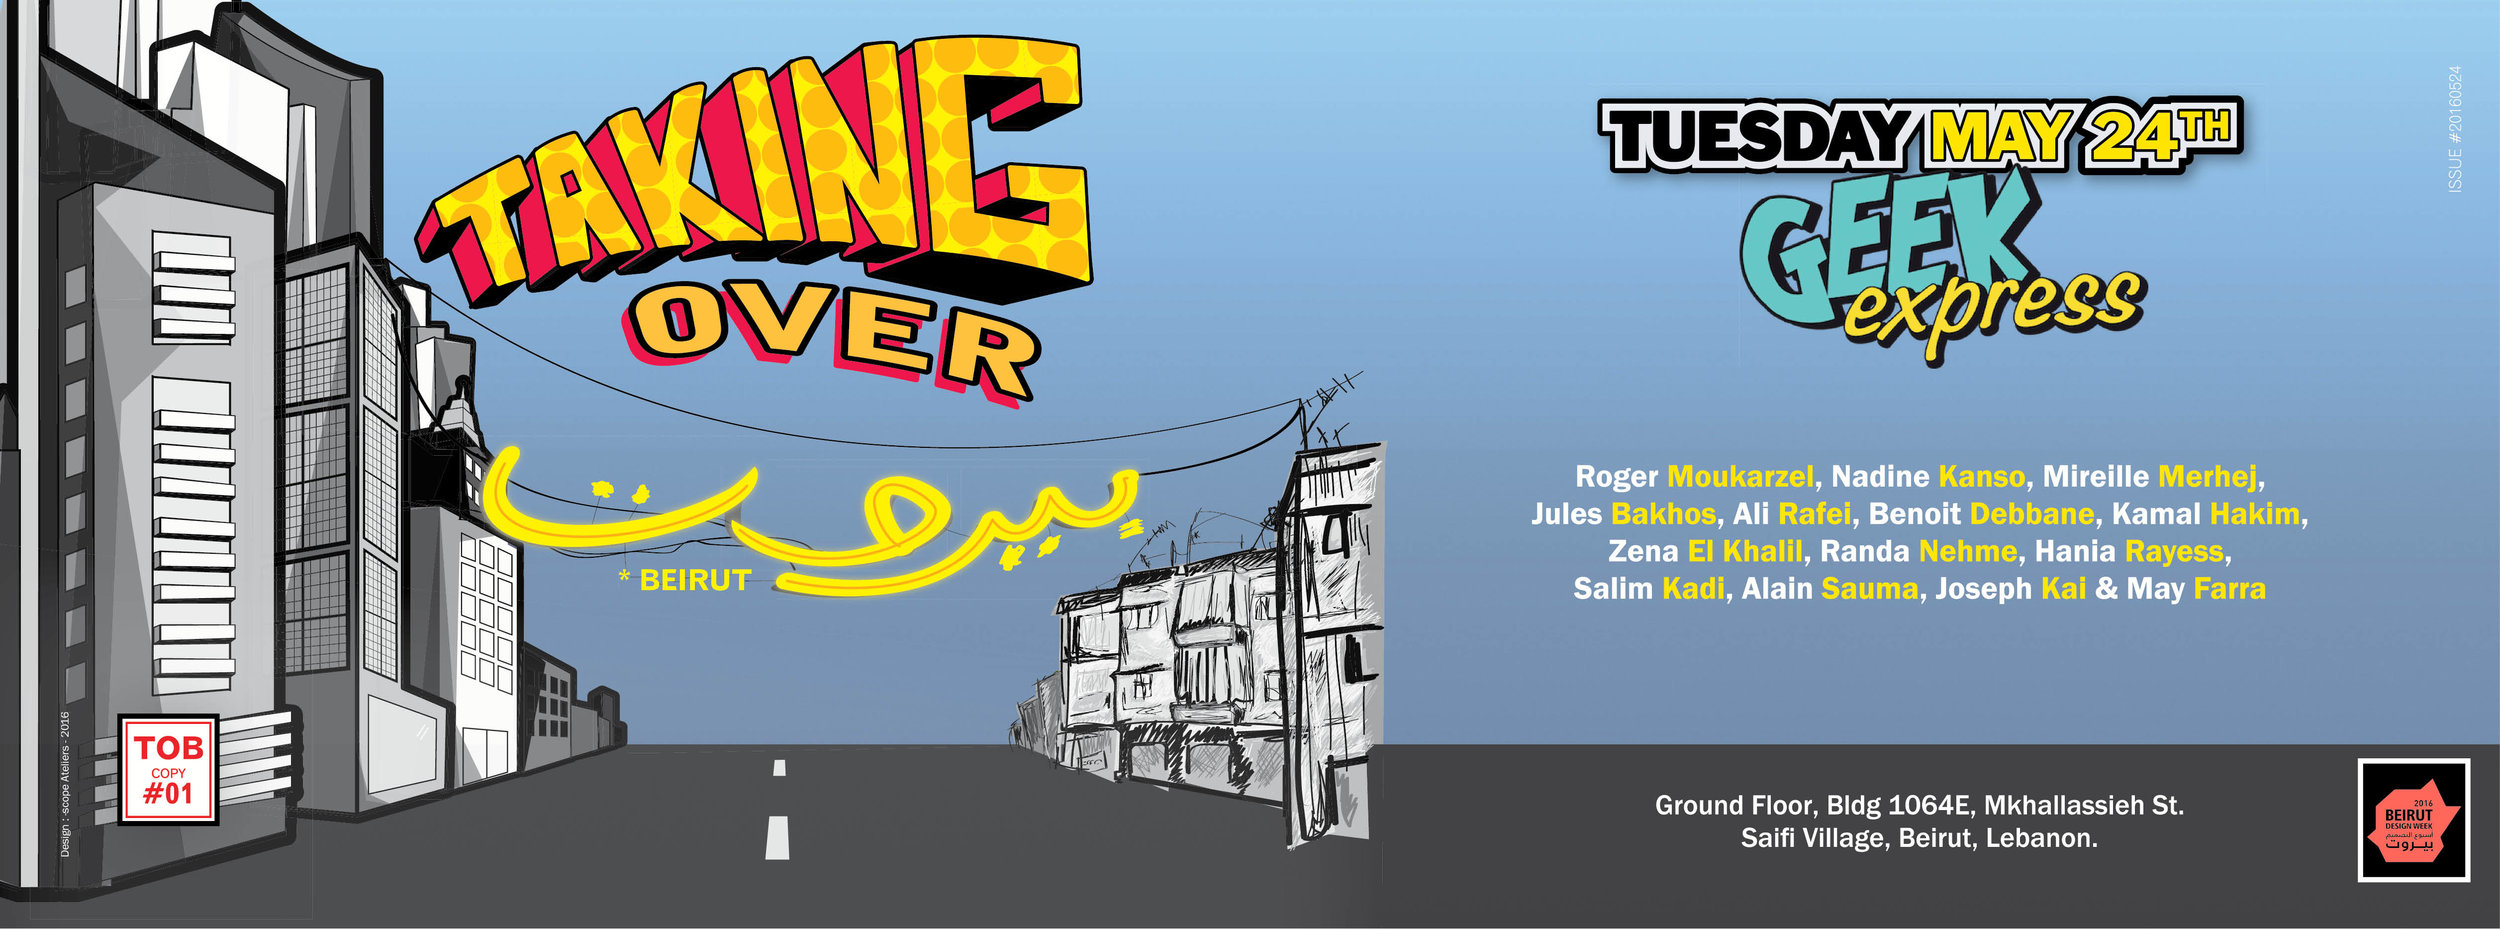 Taking Over Beirut-Facebook-02.jpg